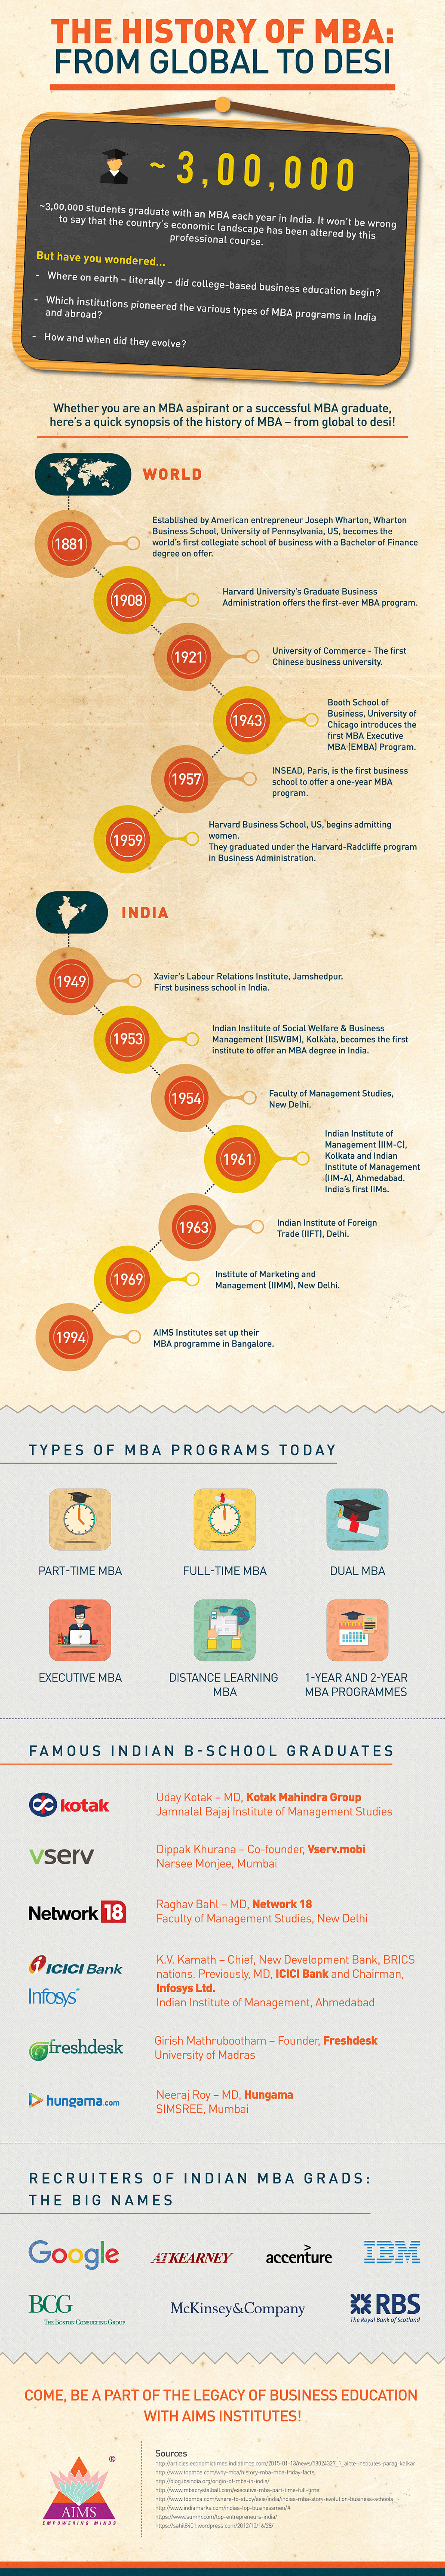 The History of MBA - From Global to Desi Infographic